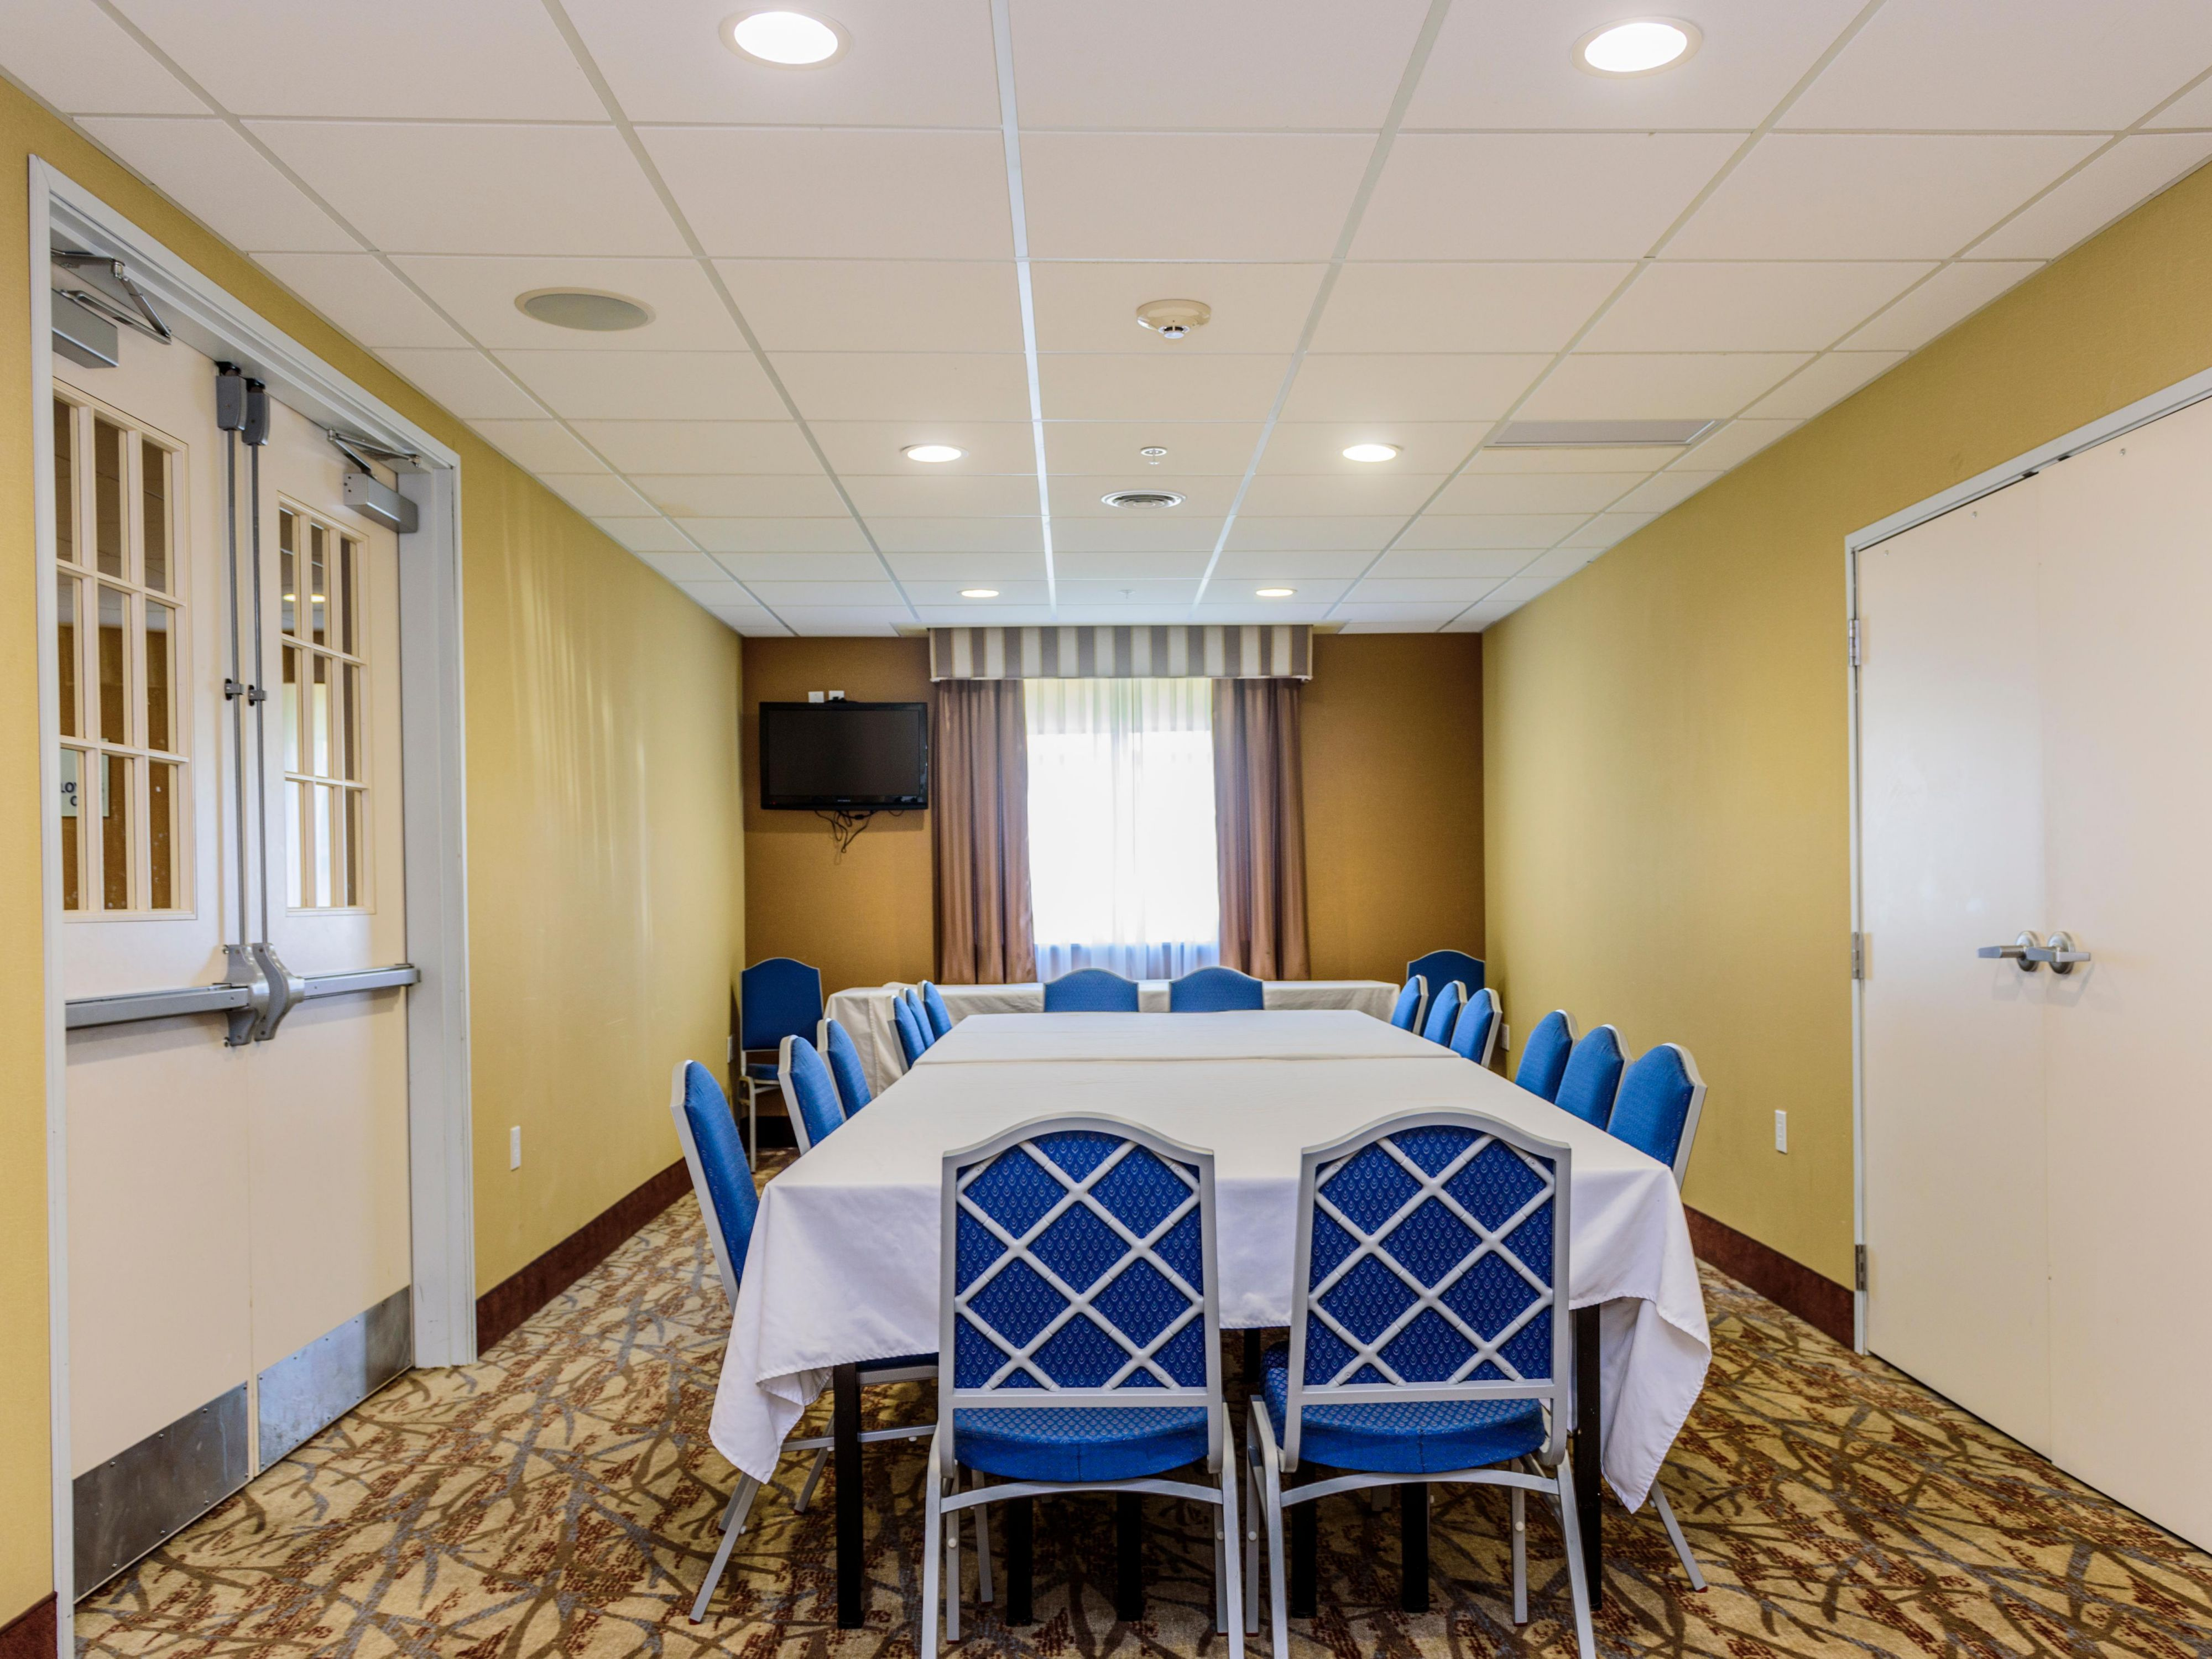 Meeting Room is 300 square feet. Can accommodate up to 30 people